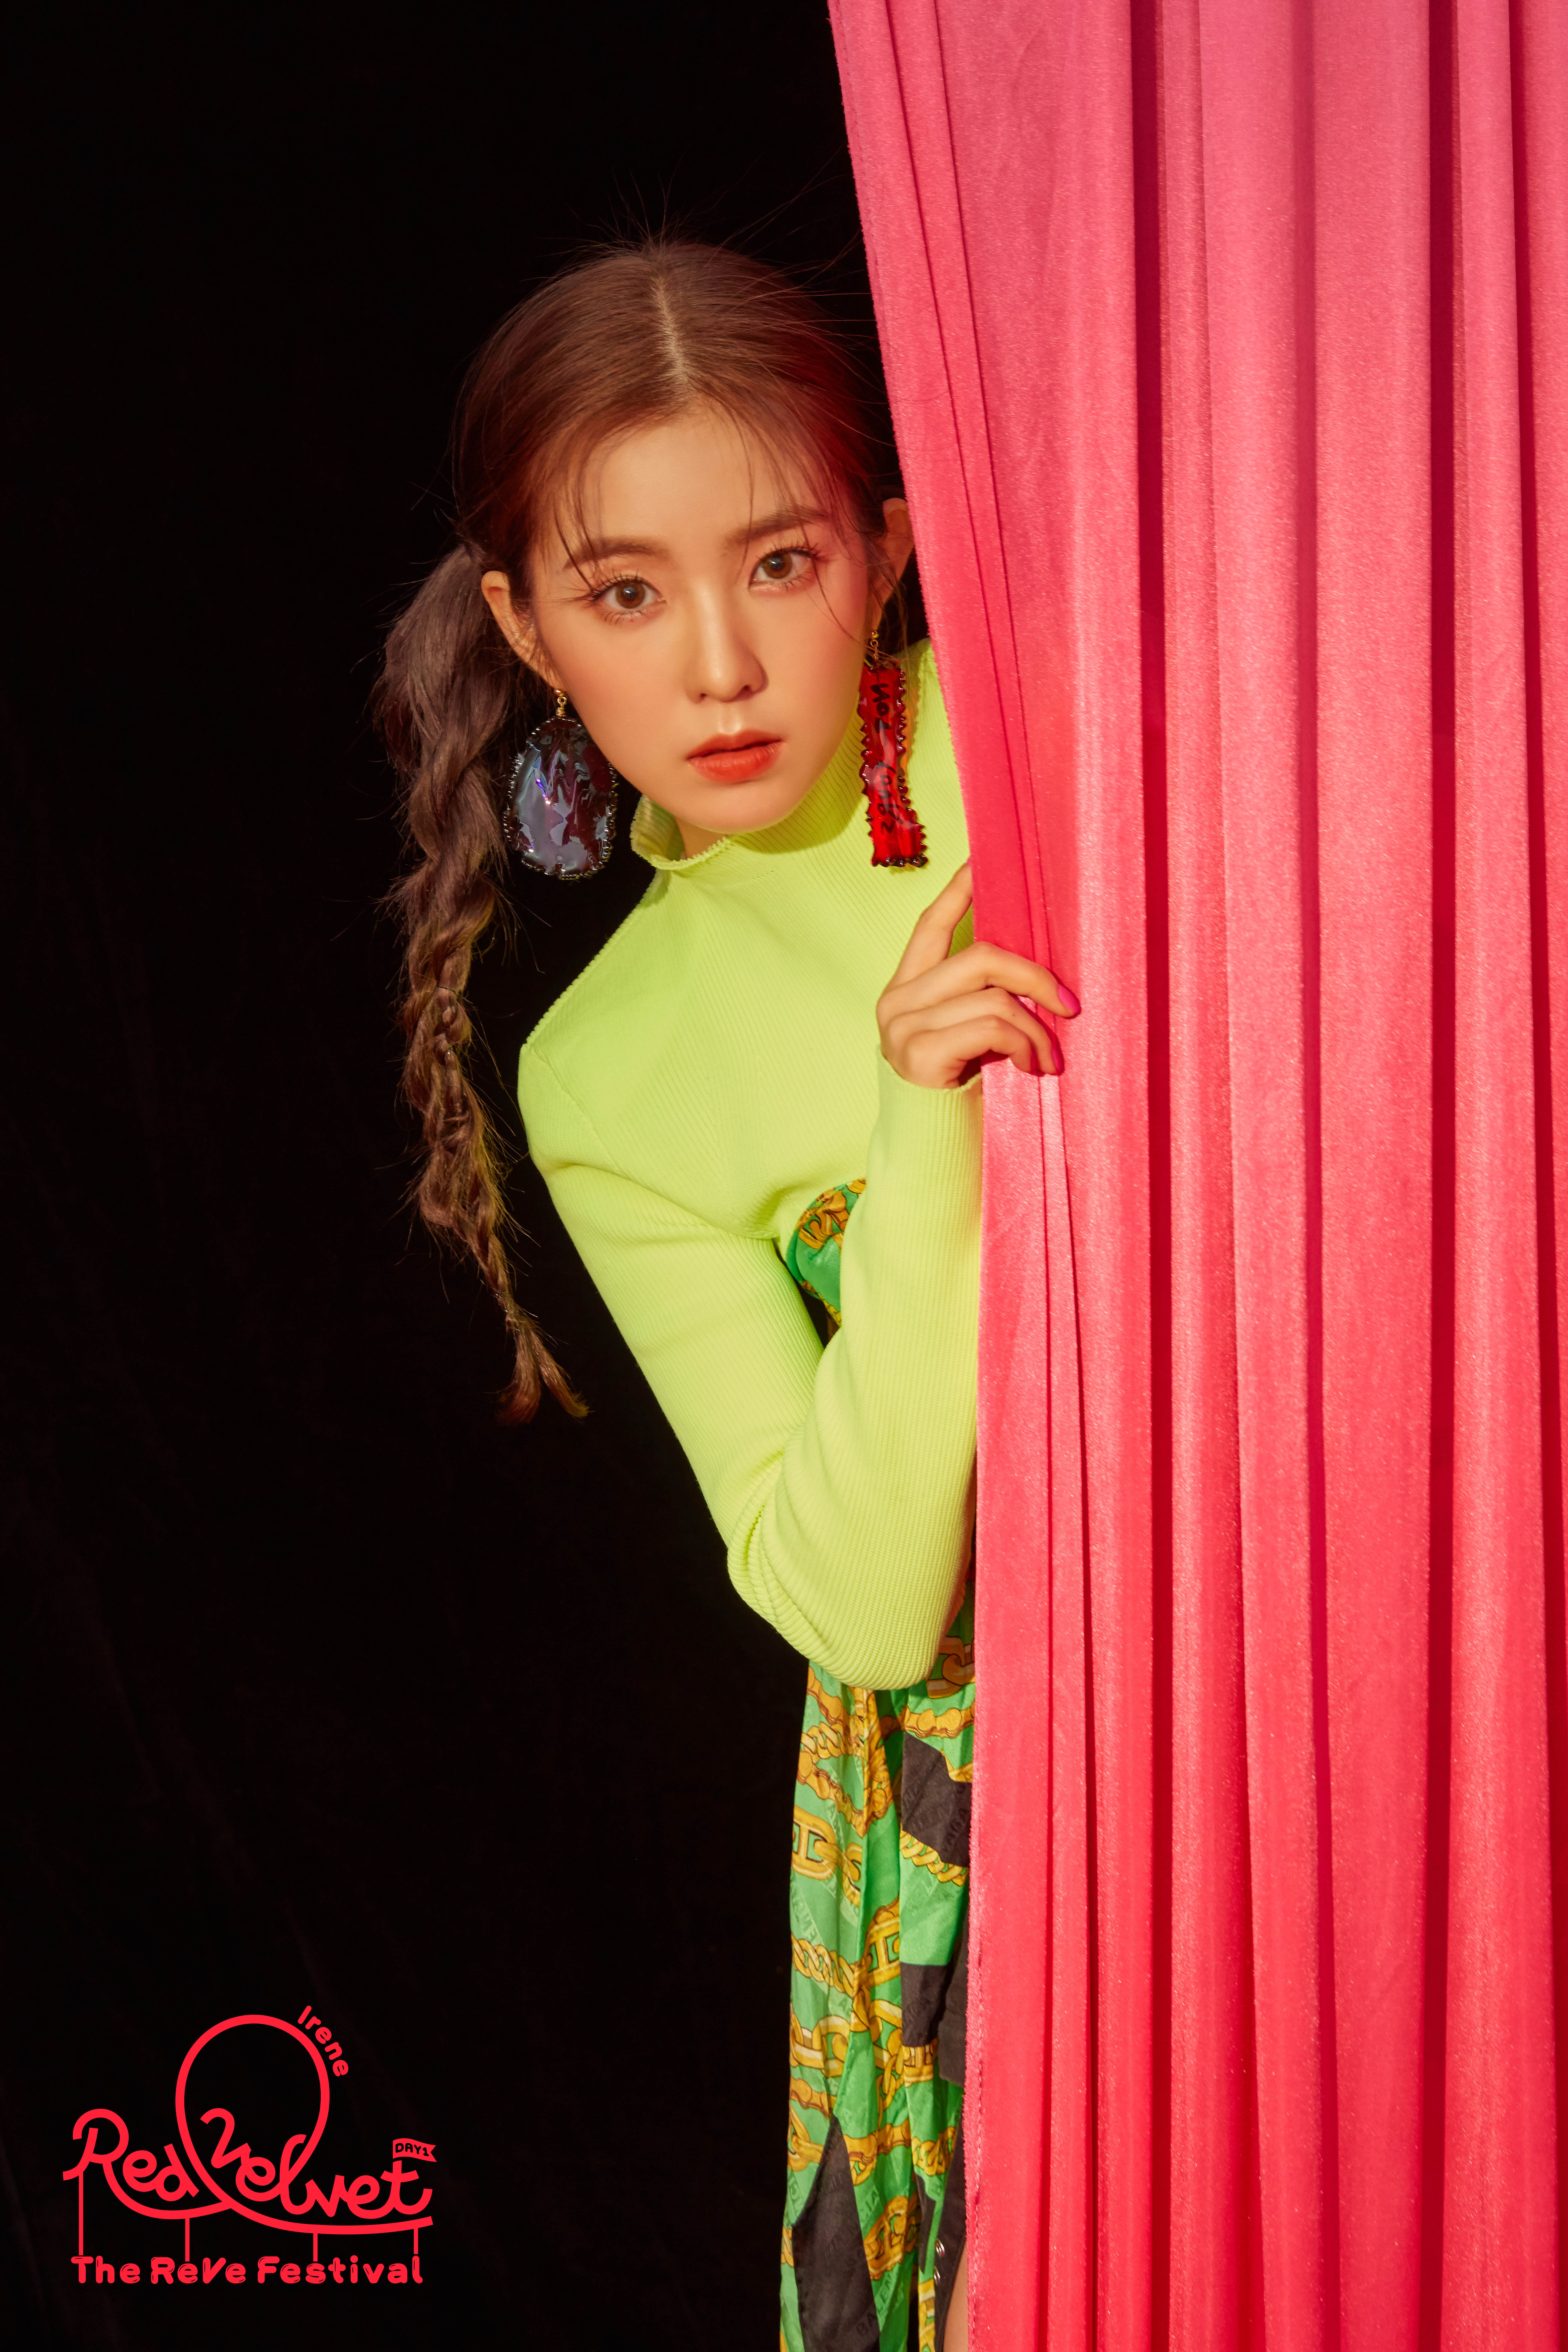 Red Velvet – ReVe Festival Day 1 Irene Teaser Photos (HD/HR)